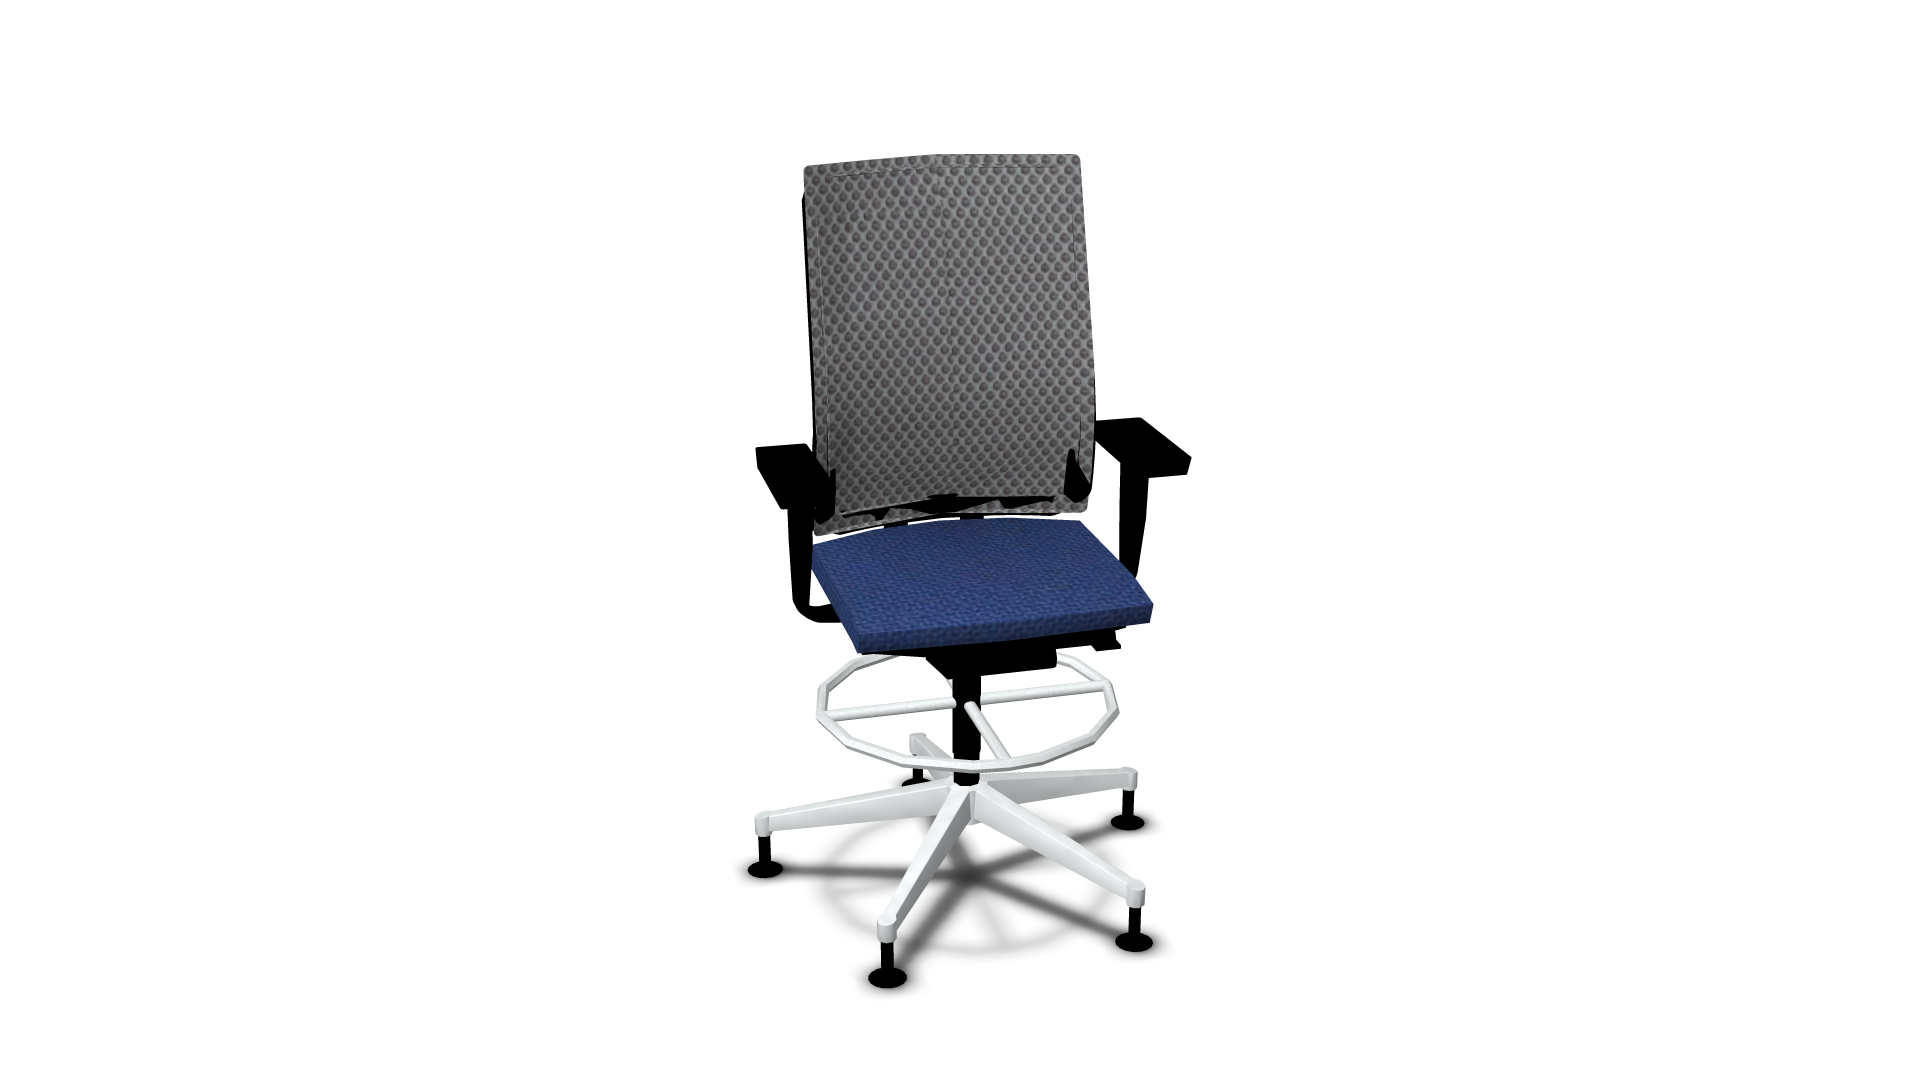 CAD: B_Run Counterchair